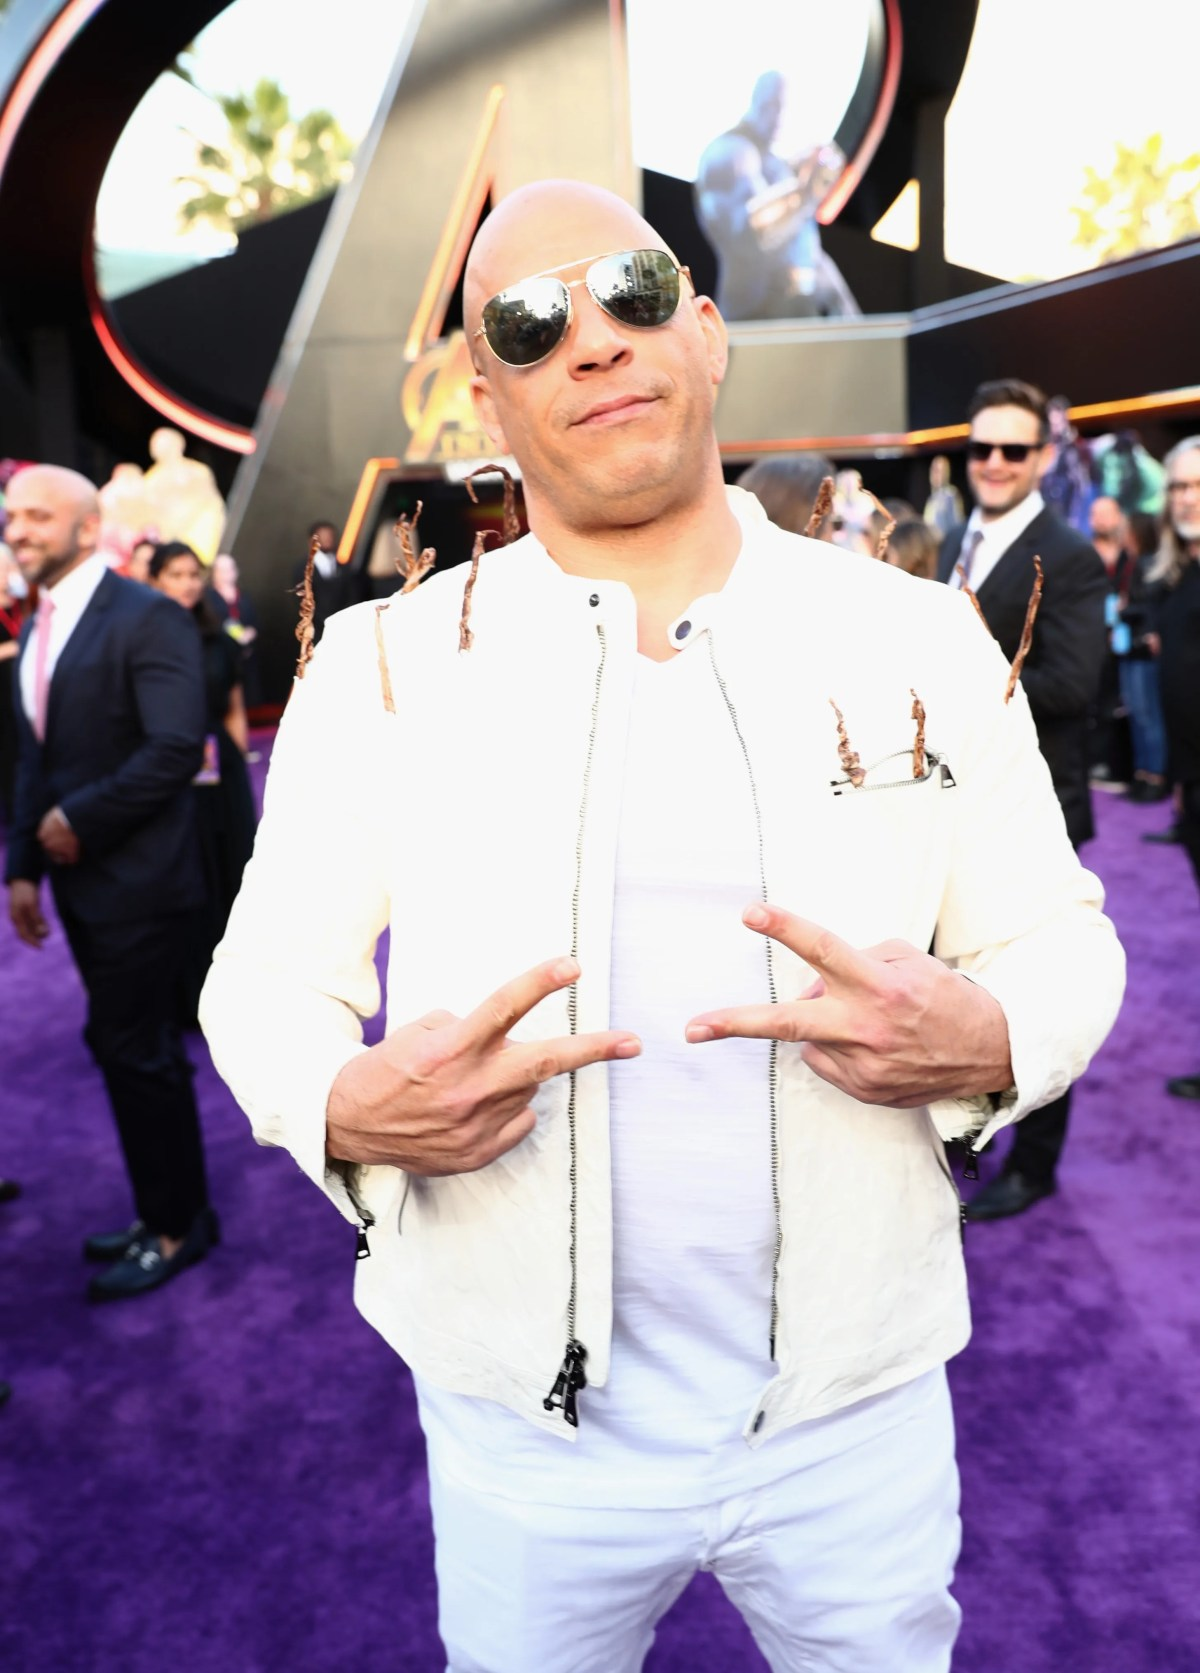 """The shades are on, and the peace signs are out! Vin Diesel attends the Los Angeles premiere of Marvel's """"Avengers: Infinity War"""" in 2018."""